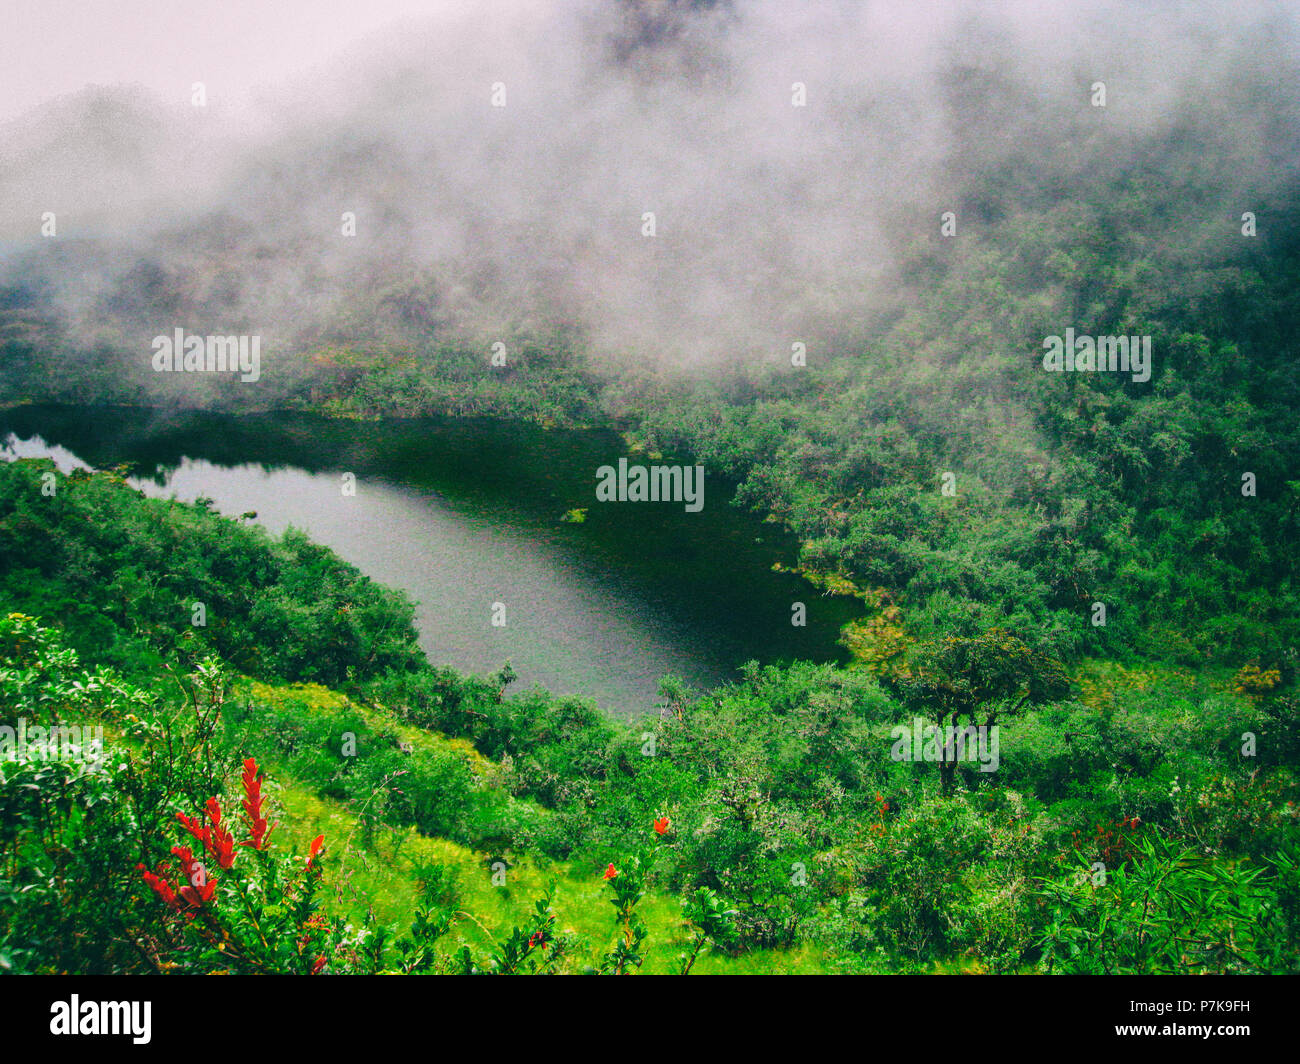 Beautiful chill wallpaper image of red flower in the jungle with a lake on the background and clouds covering the mountains. Peru. No people.